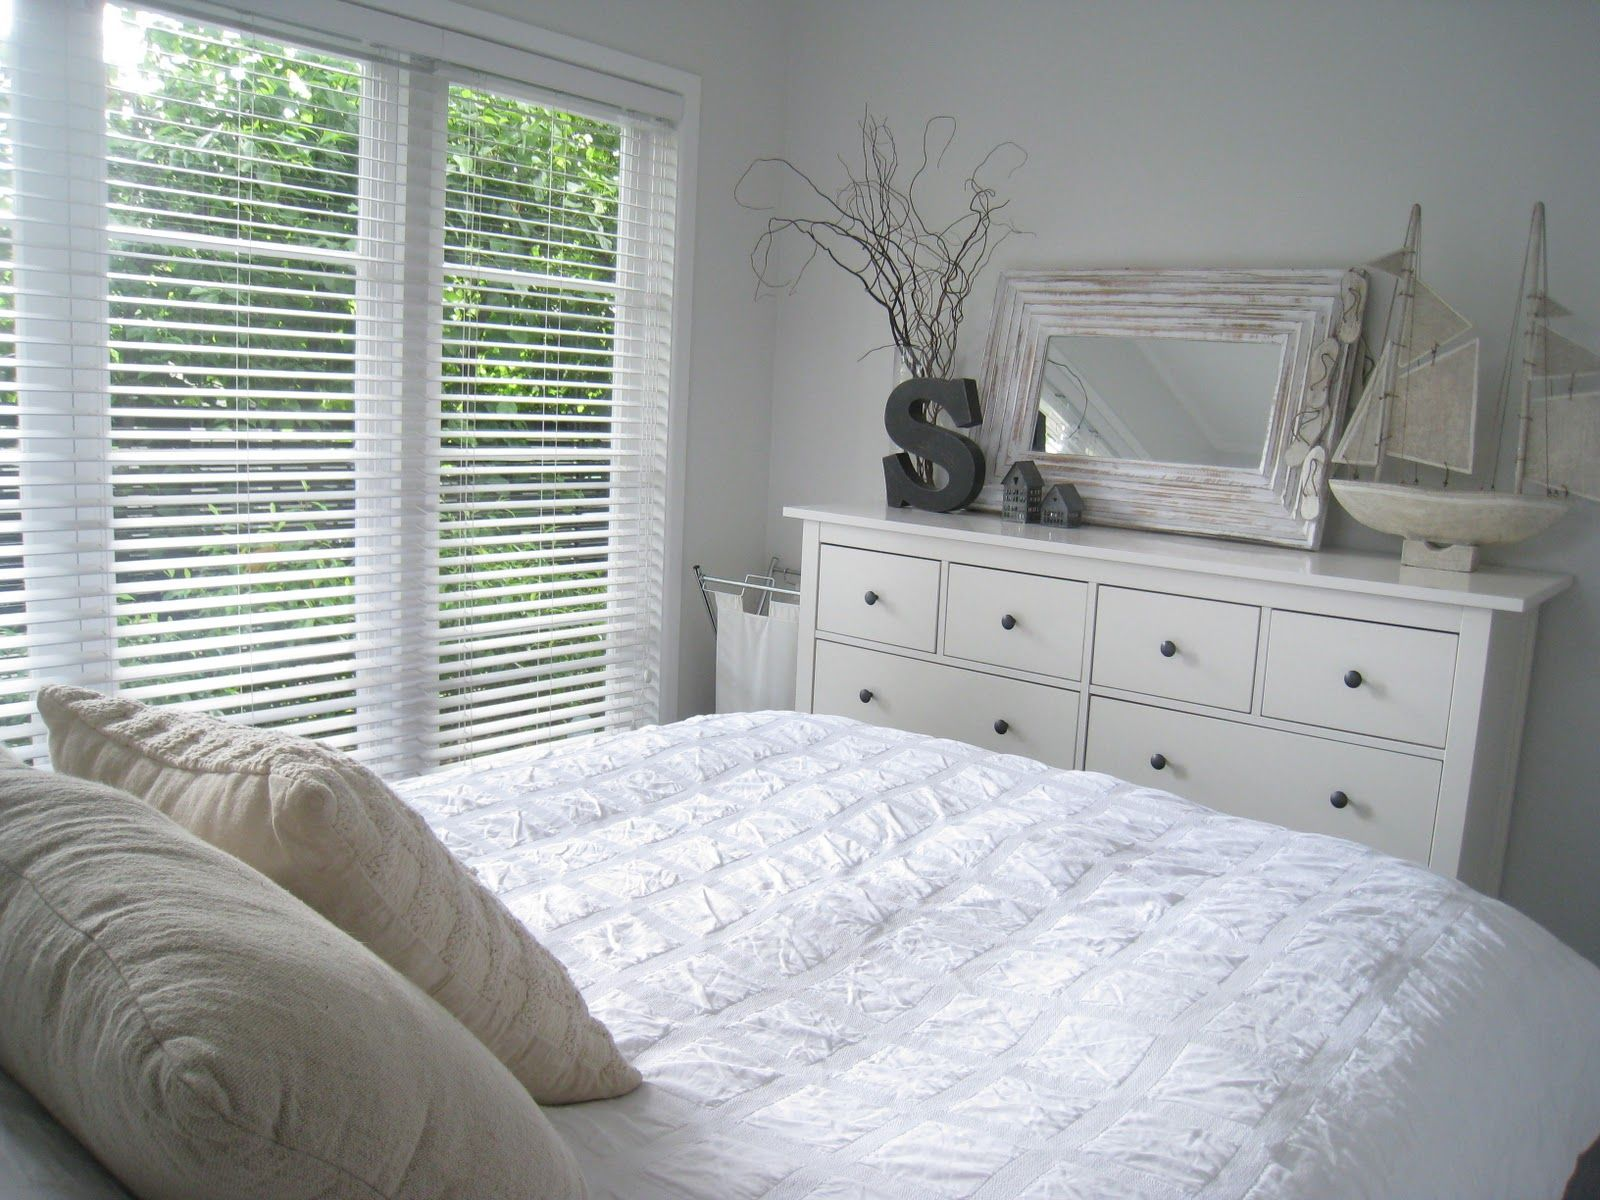 ikea hemnes bed white   Google Search. ikea hemnes bed white   Google Search   For the Home   Pinterest